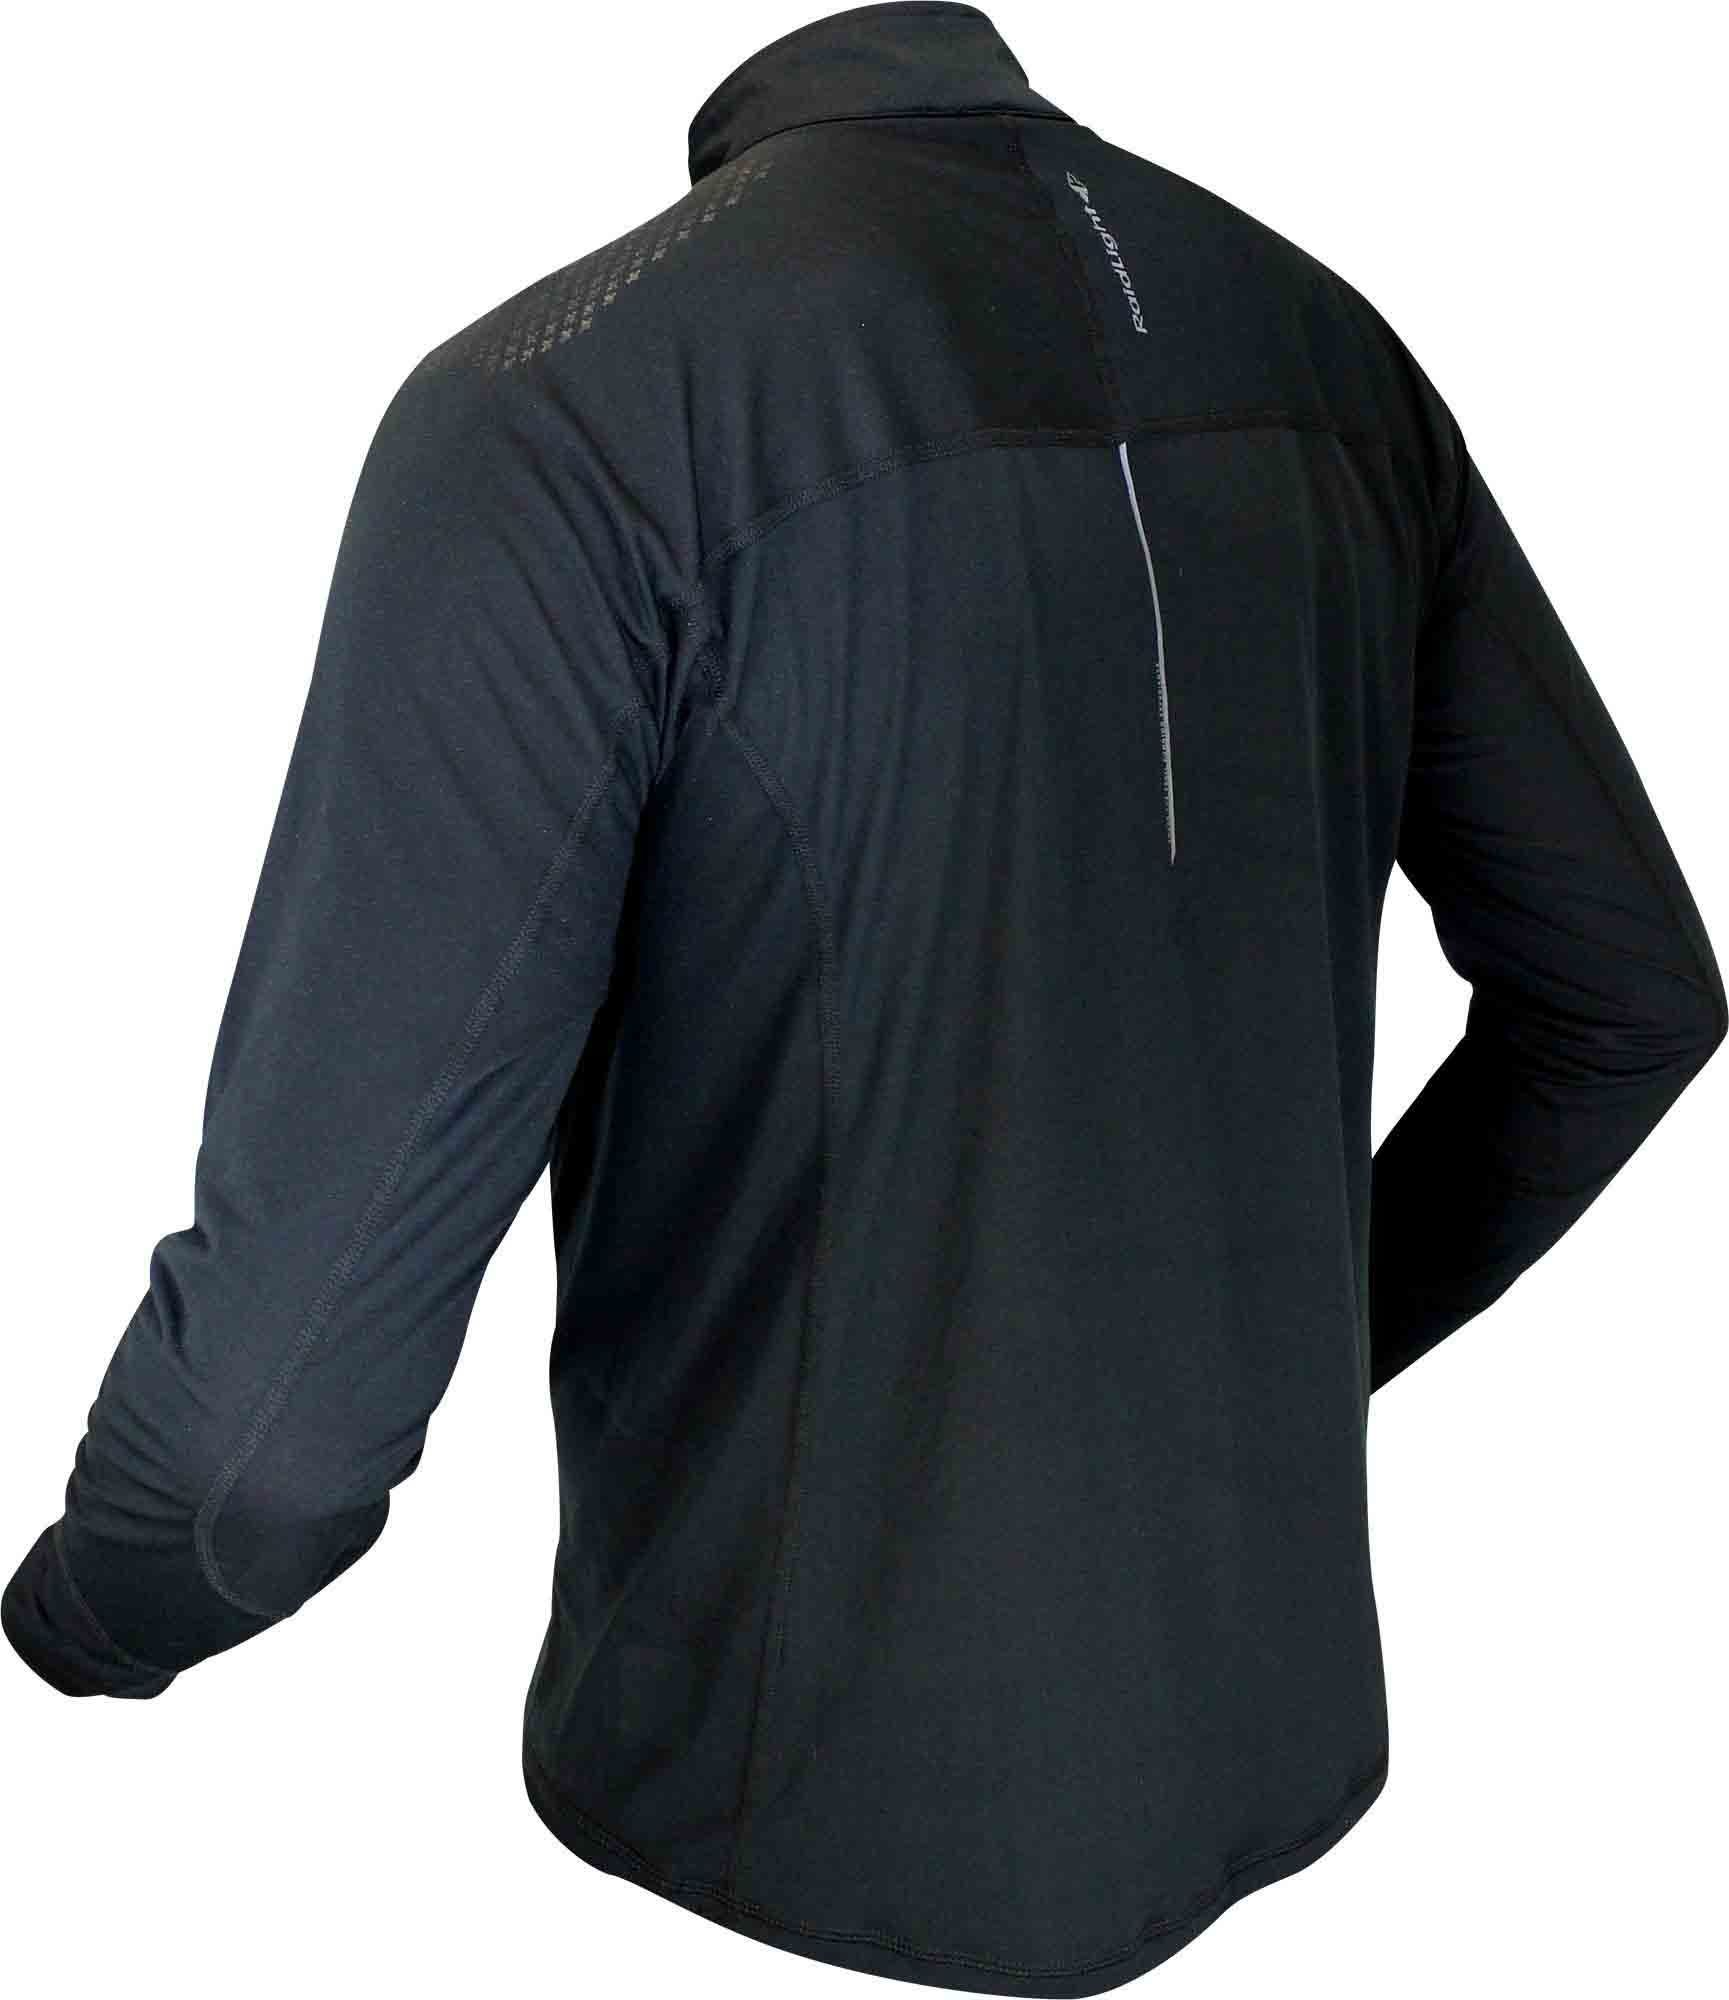 MAGLIA RAIDLIGHT DESERT LONG SLEEVE TOP GLHMT04 MEN black back.jpg